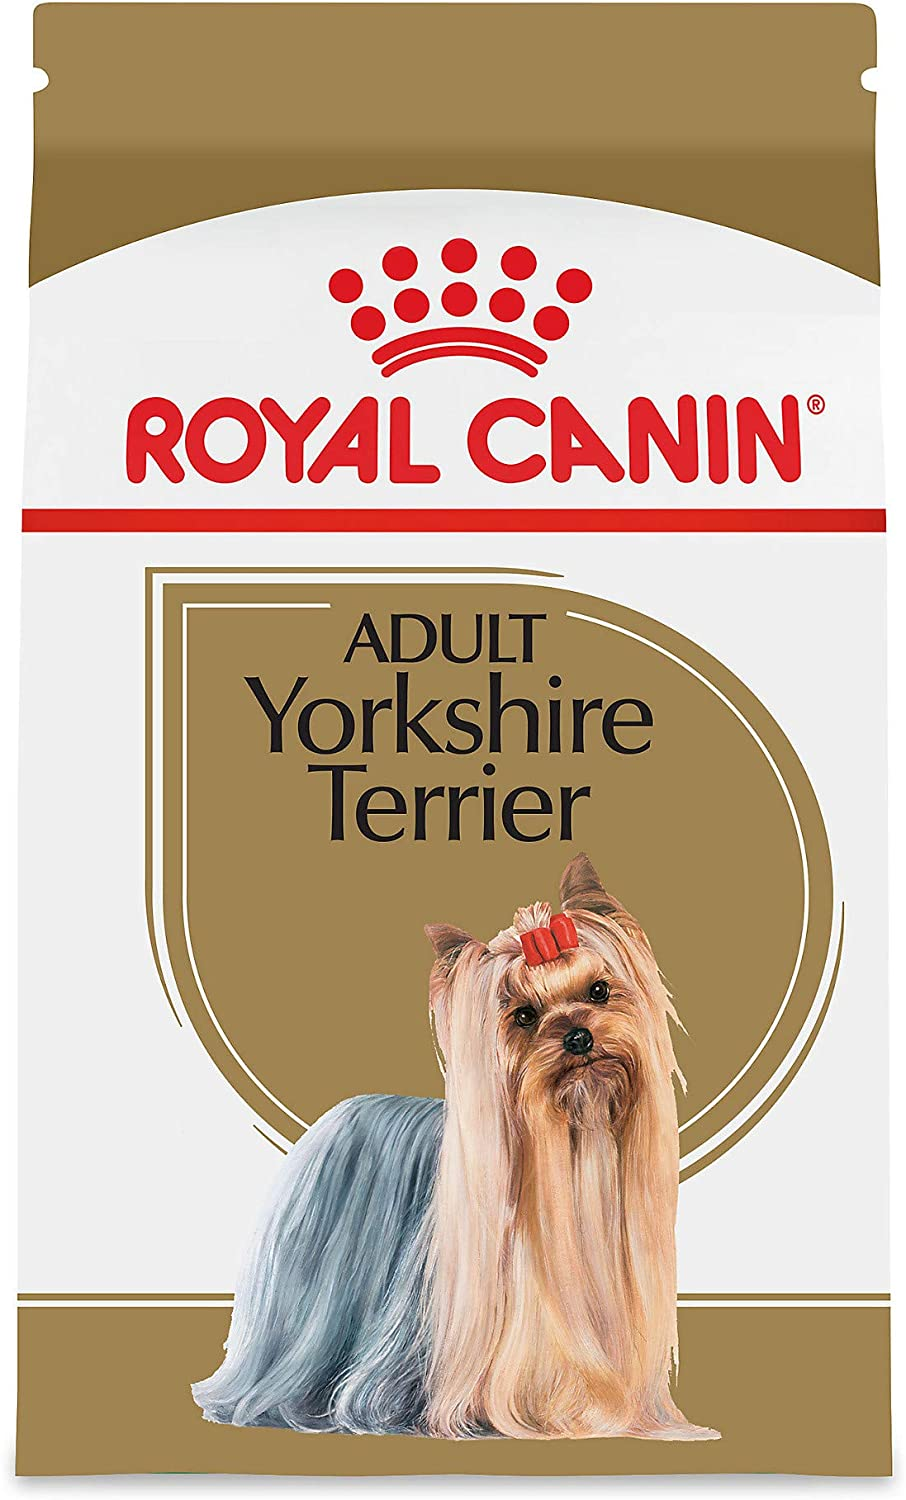 2. Royal Canin Yorkshire Terrier